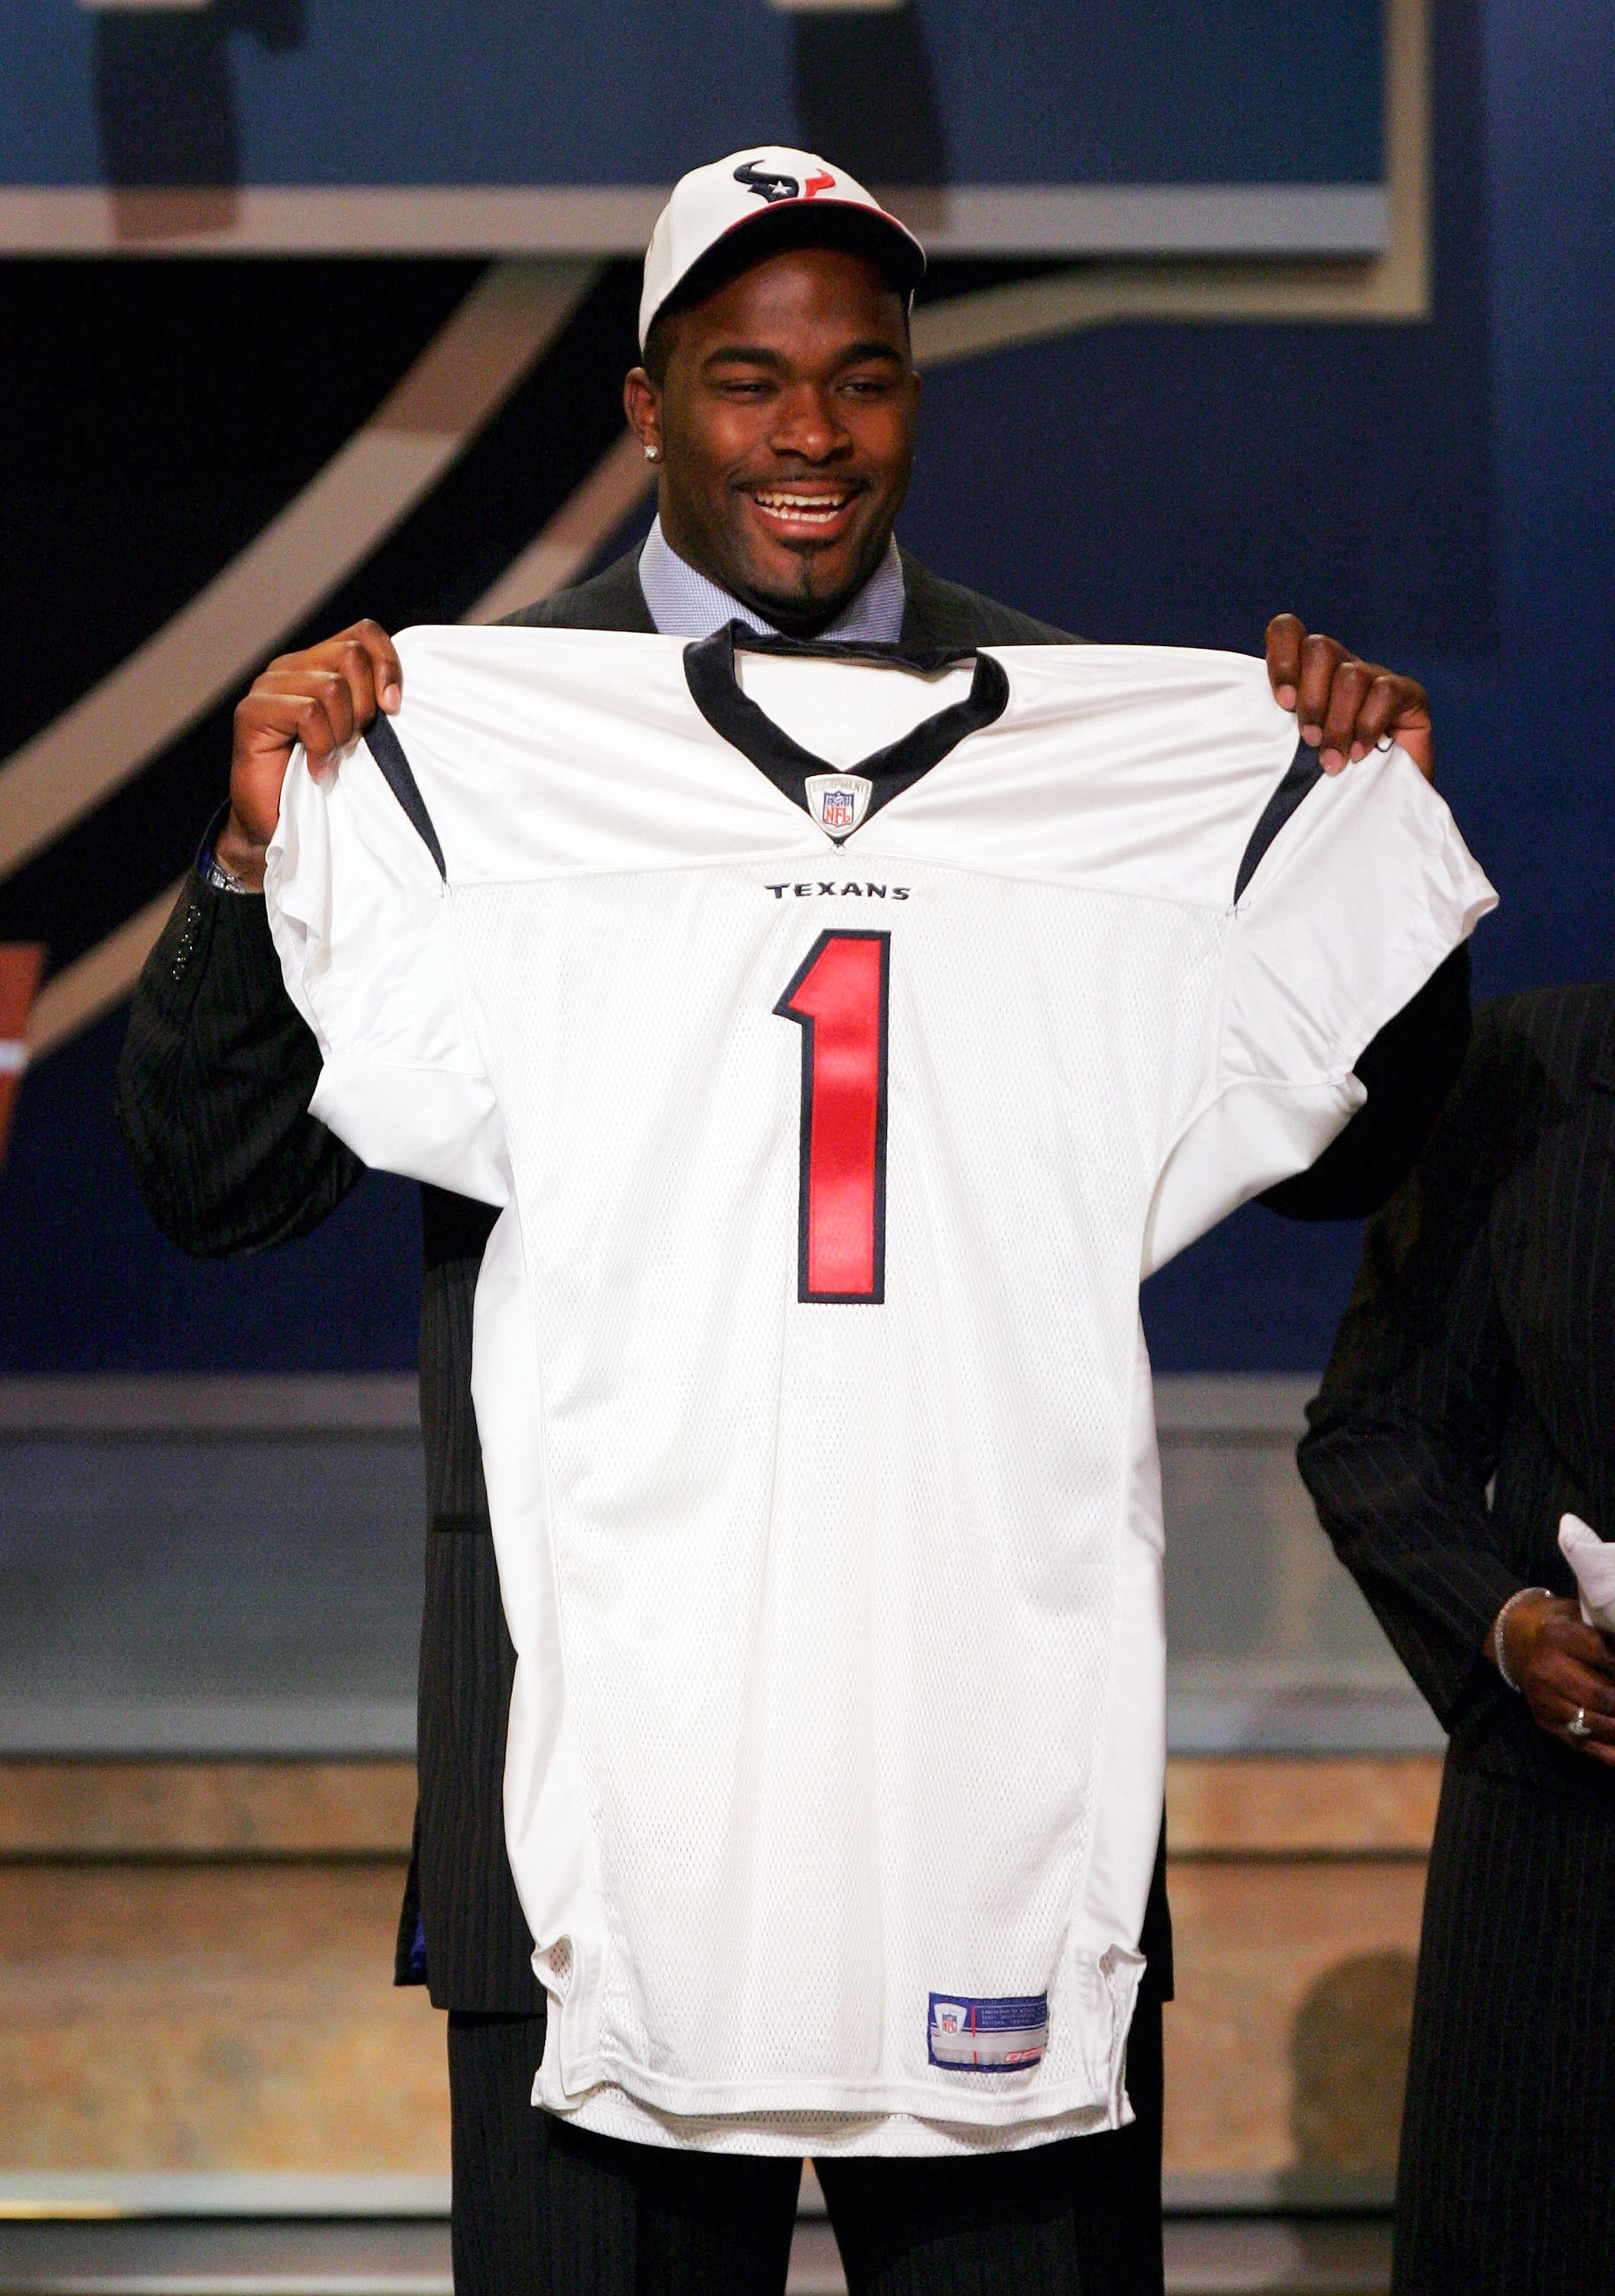 A lot--and I mean A LOT--of Texans fans were apoplectic about the decision to draft Mario Williams in 2006.